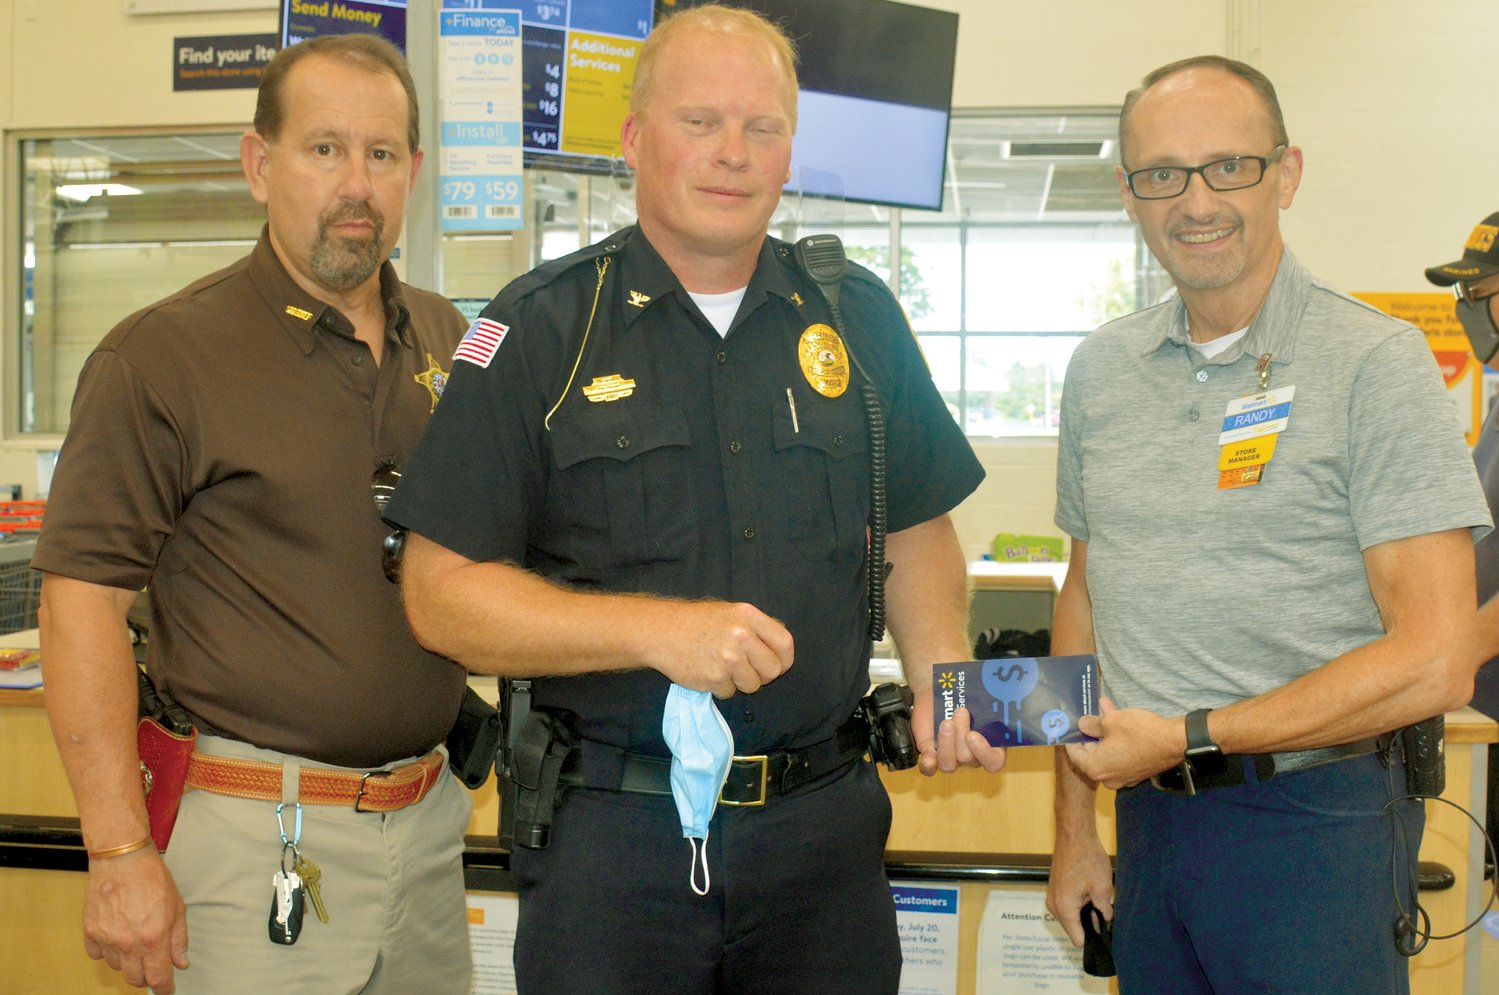 The Paris Wal-Mart presented a check to support the fundraising effort of the Friends of Edgar County Law Enforcement to provide better equipment for all county and city officers. Pictured, from left, are Edgar County Sheriff Jeff Wood, Paris Police Chief Eric Brown, and Paris Wal-Mart manager Randy.